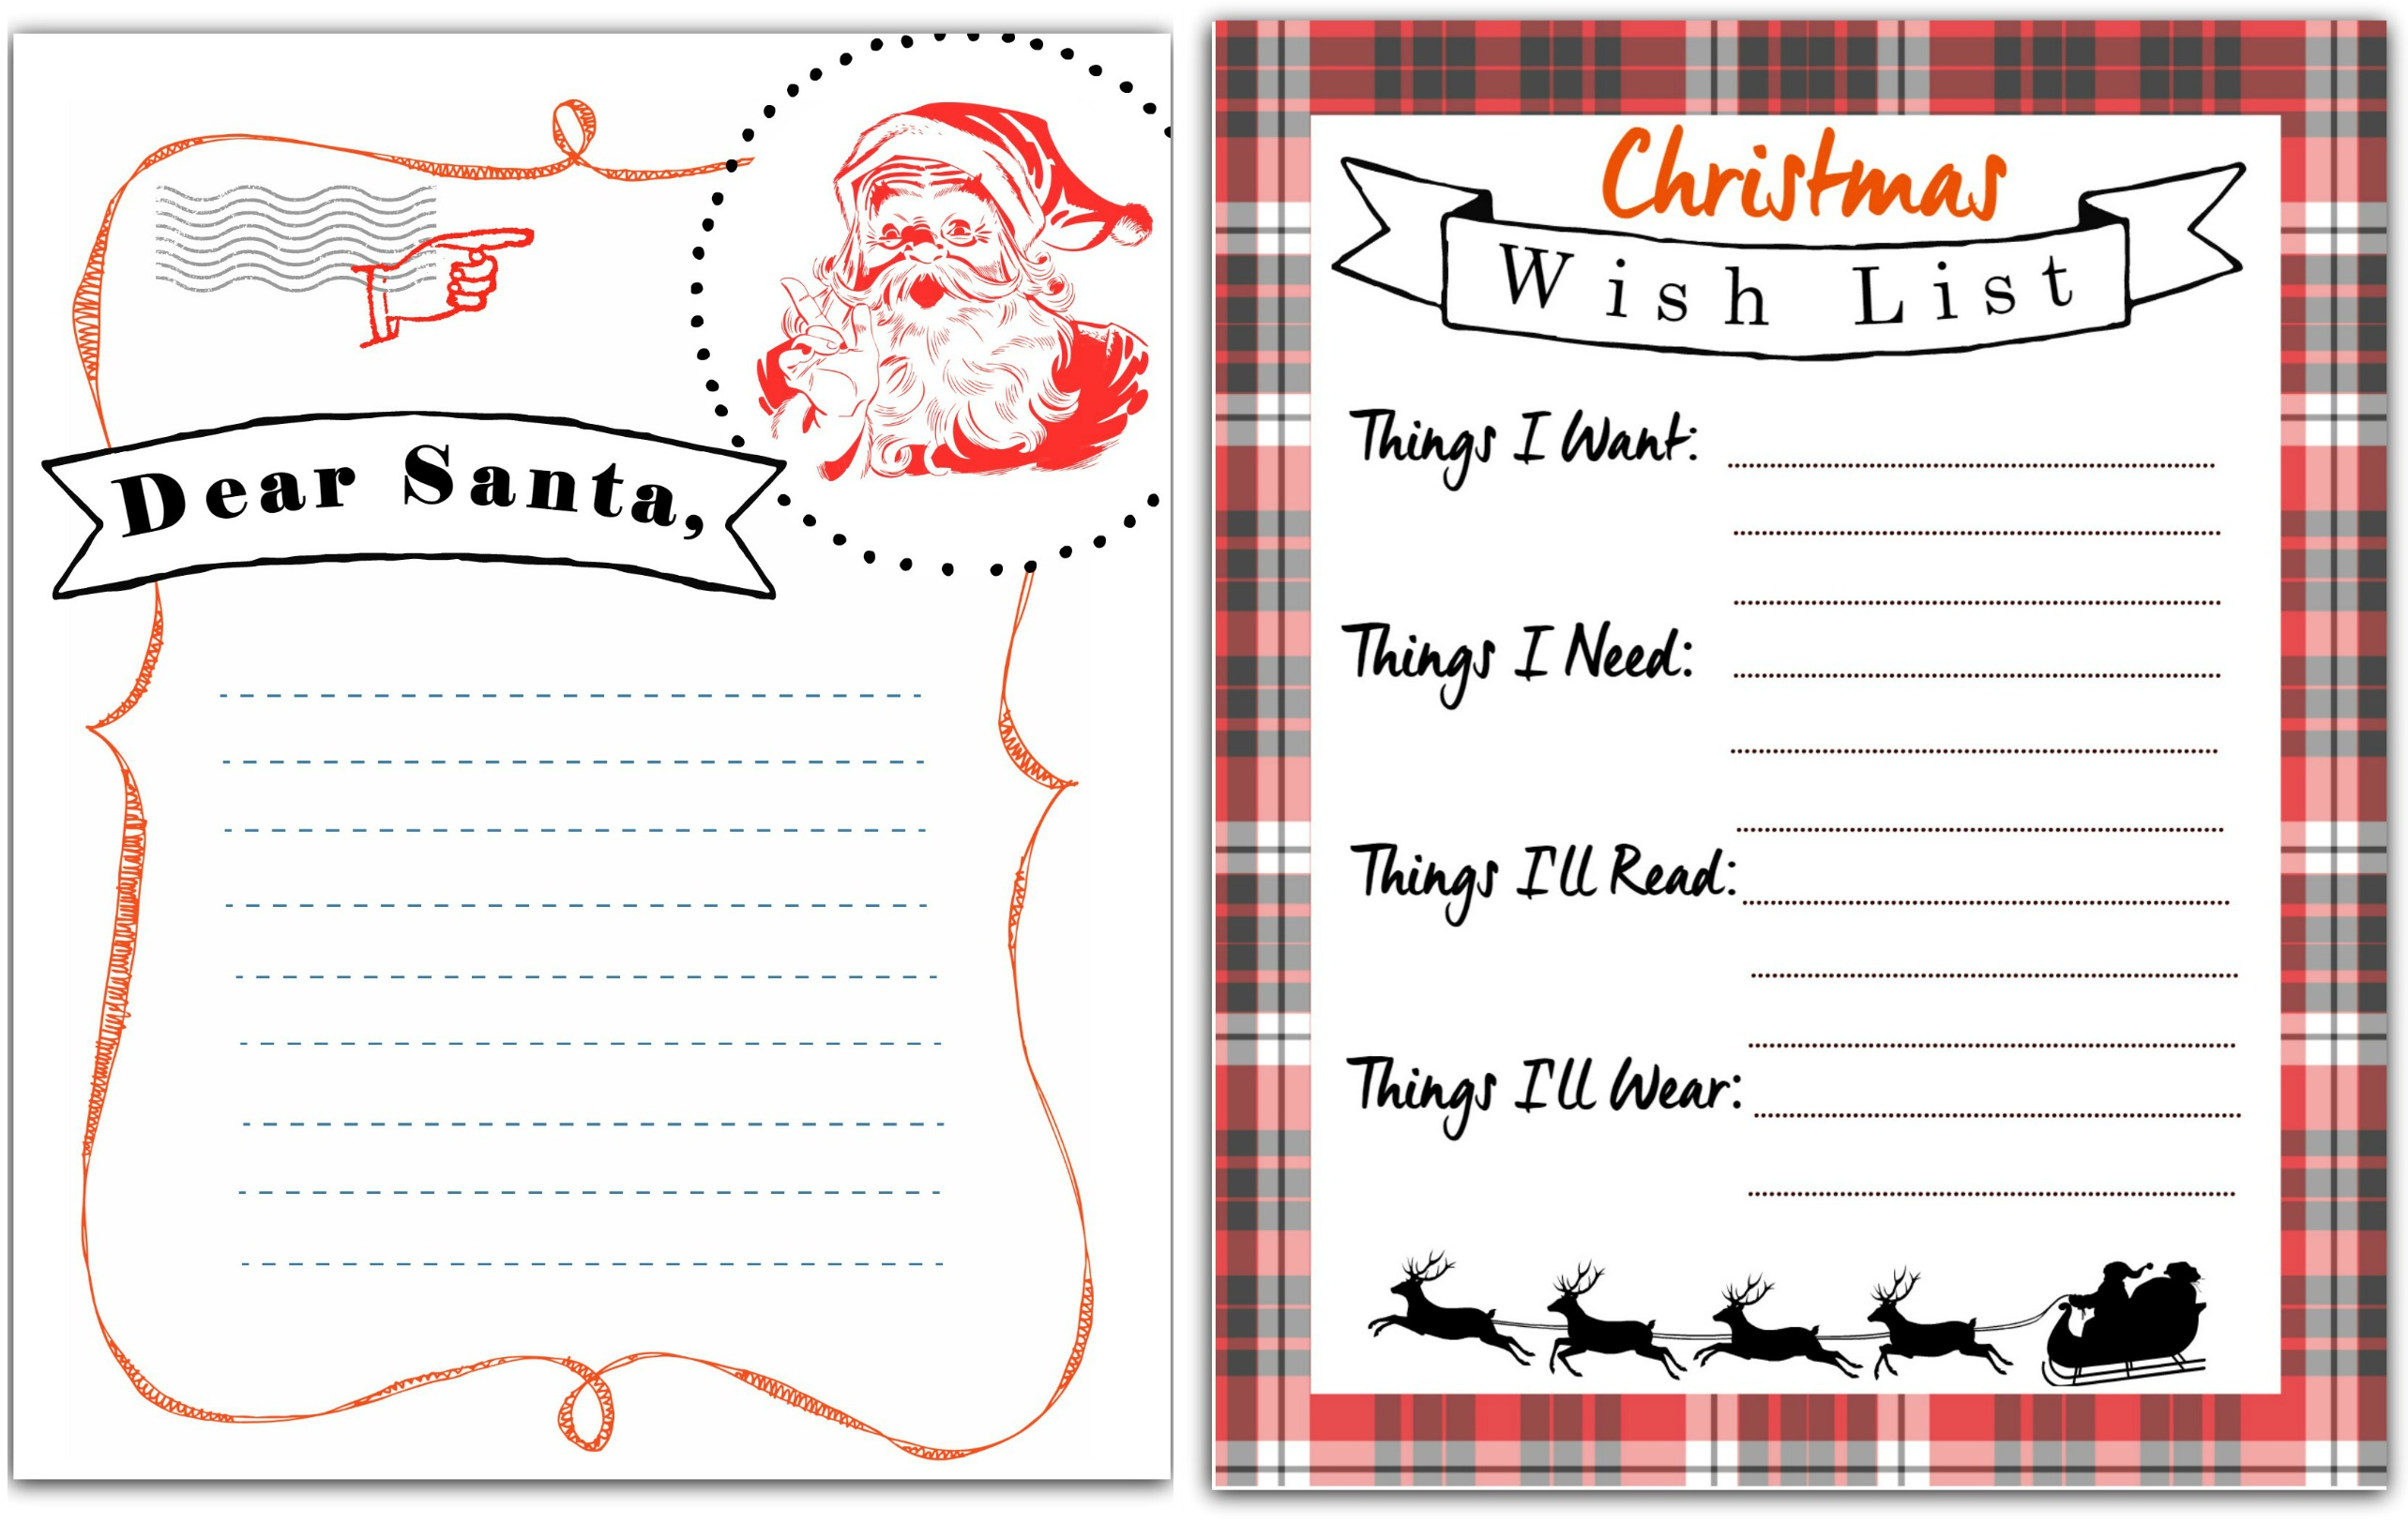 Christmas List Printable.Free Printable Letter To Santa Christmas Wish List Hip2save